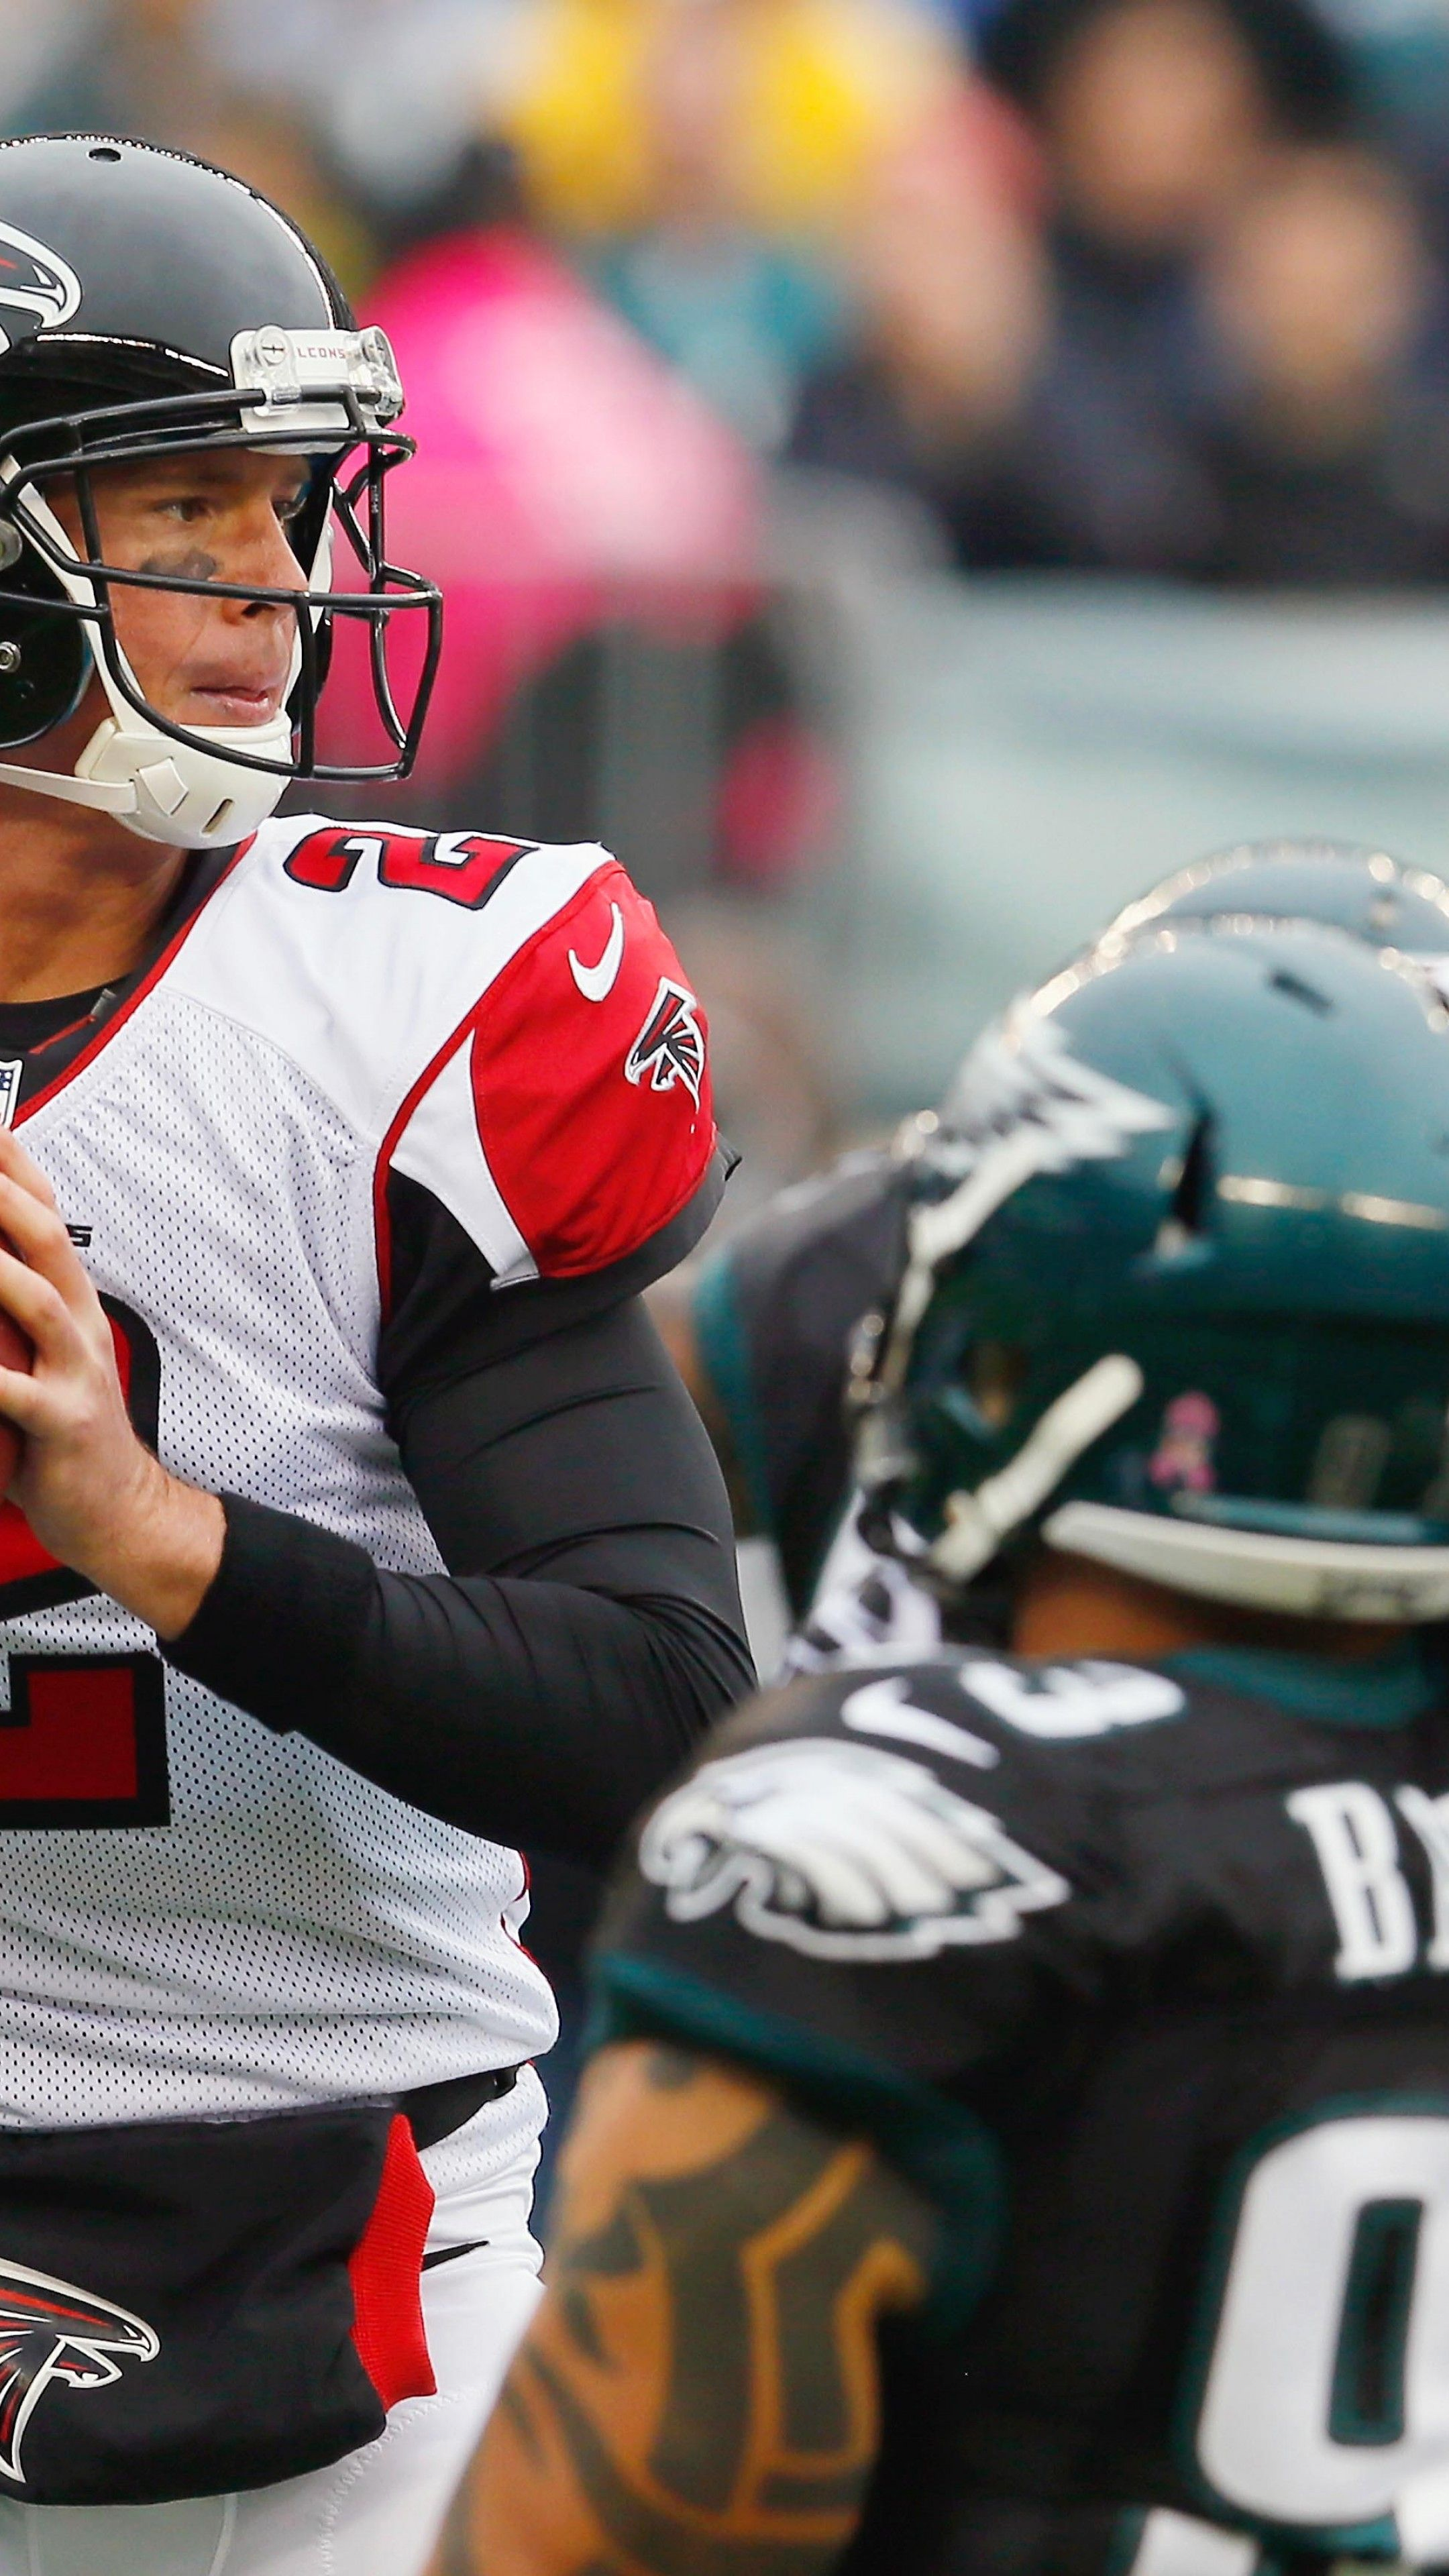 Matt Ryan Https Www Freewallpapers Site Sport Matt Ryan Html American Football Atlanta Falcons Matthew Matt Ryan National Football League American Football